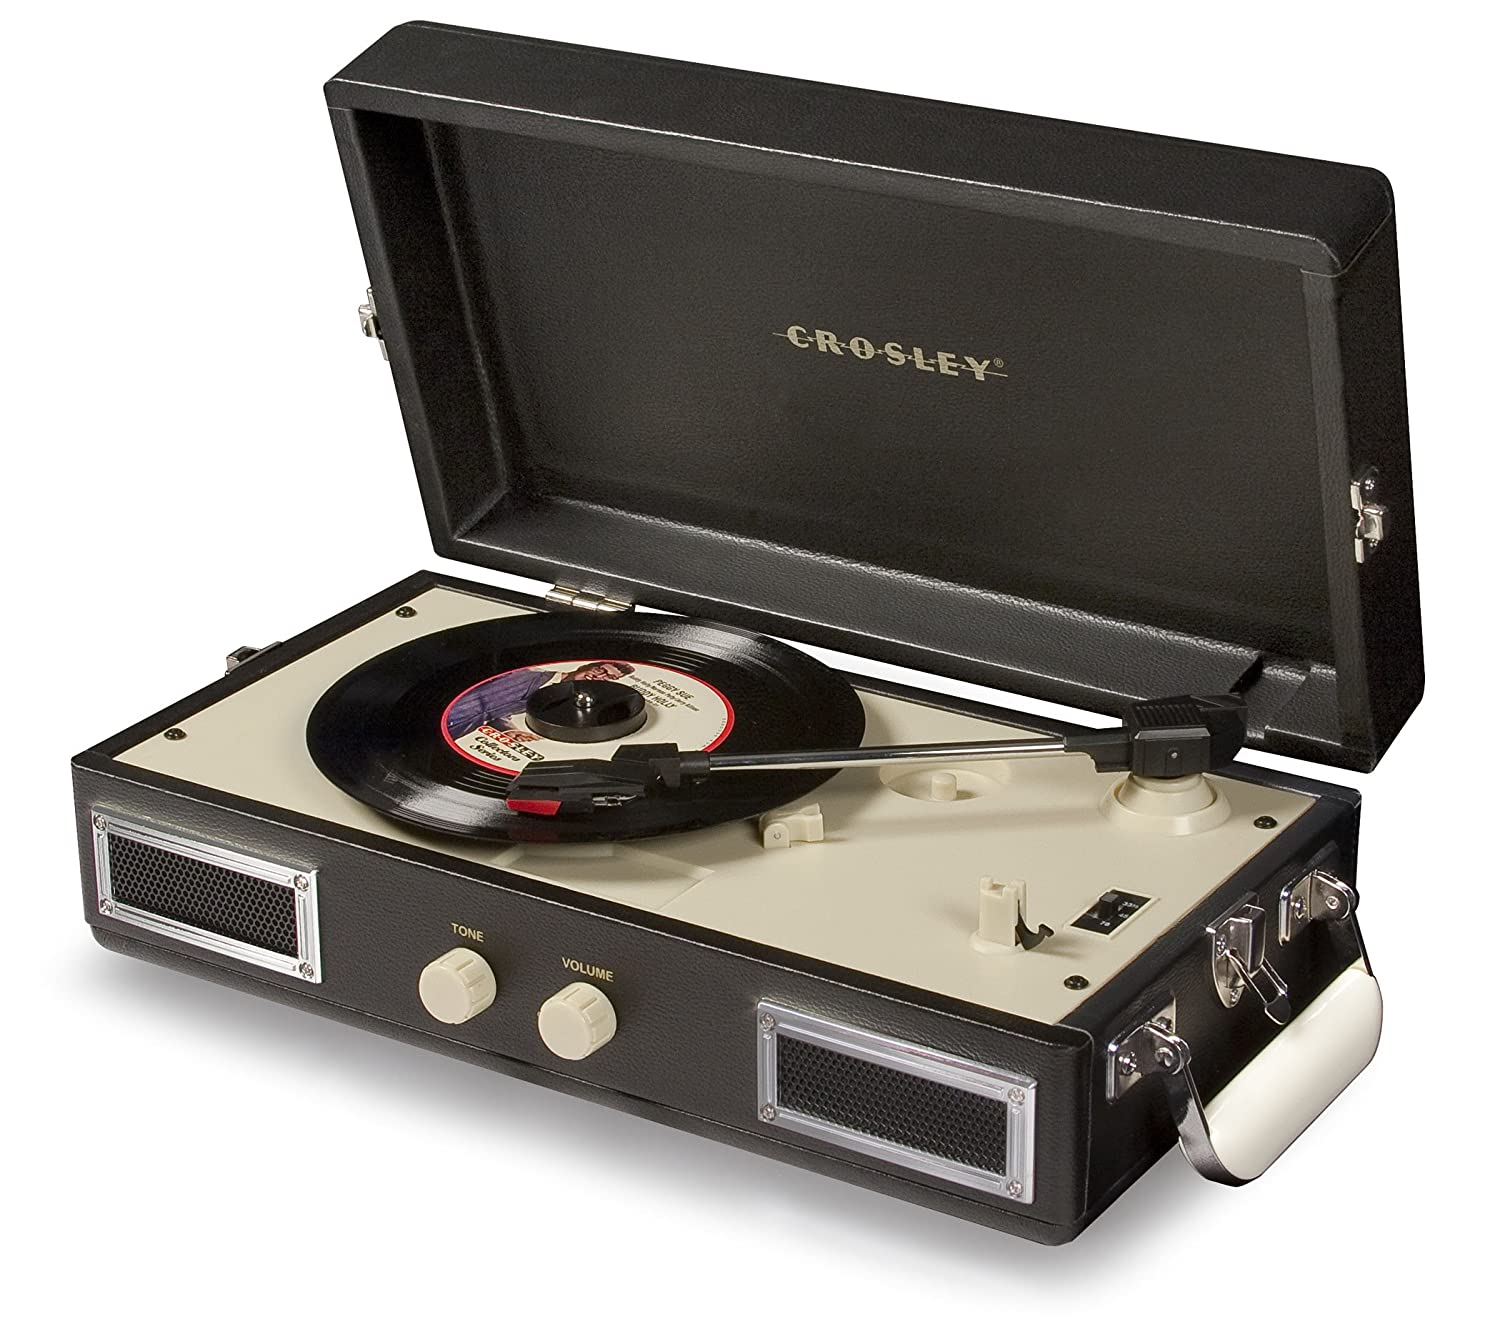 Best turntable under $100 dollars